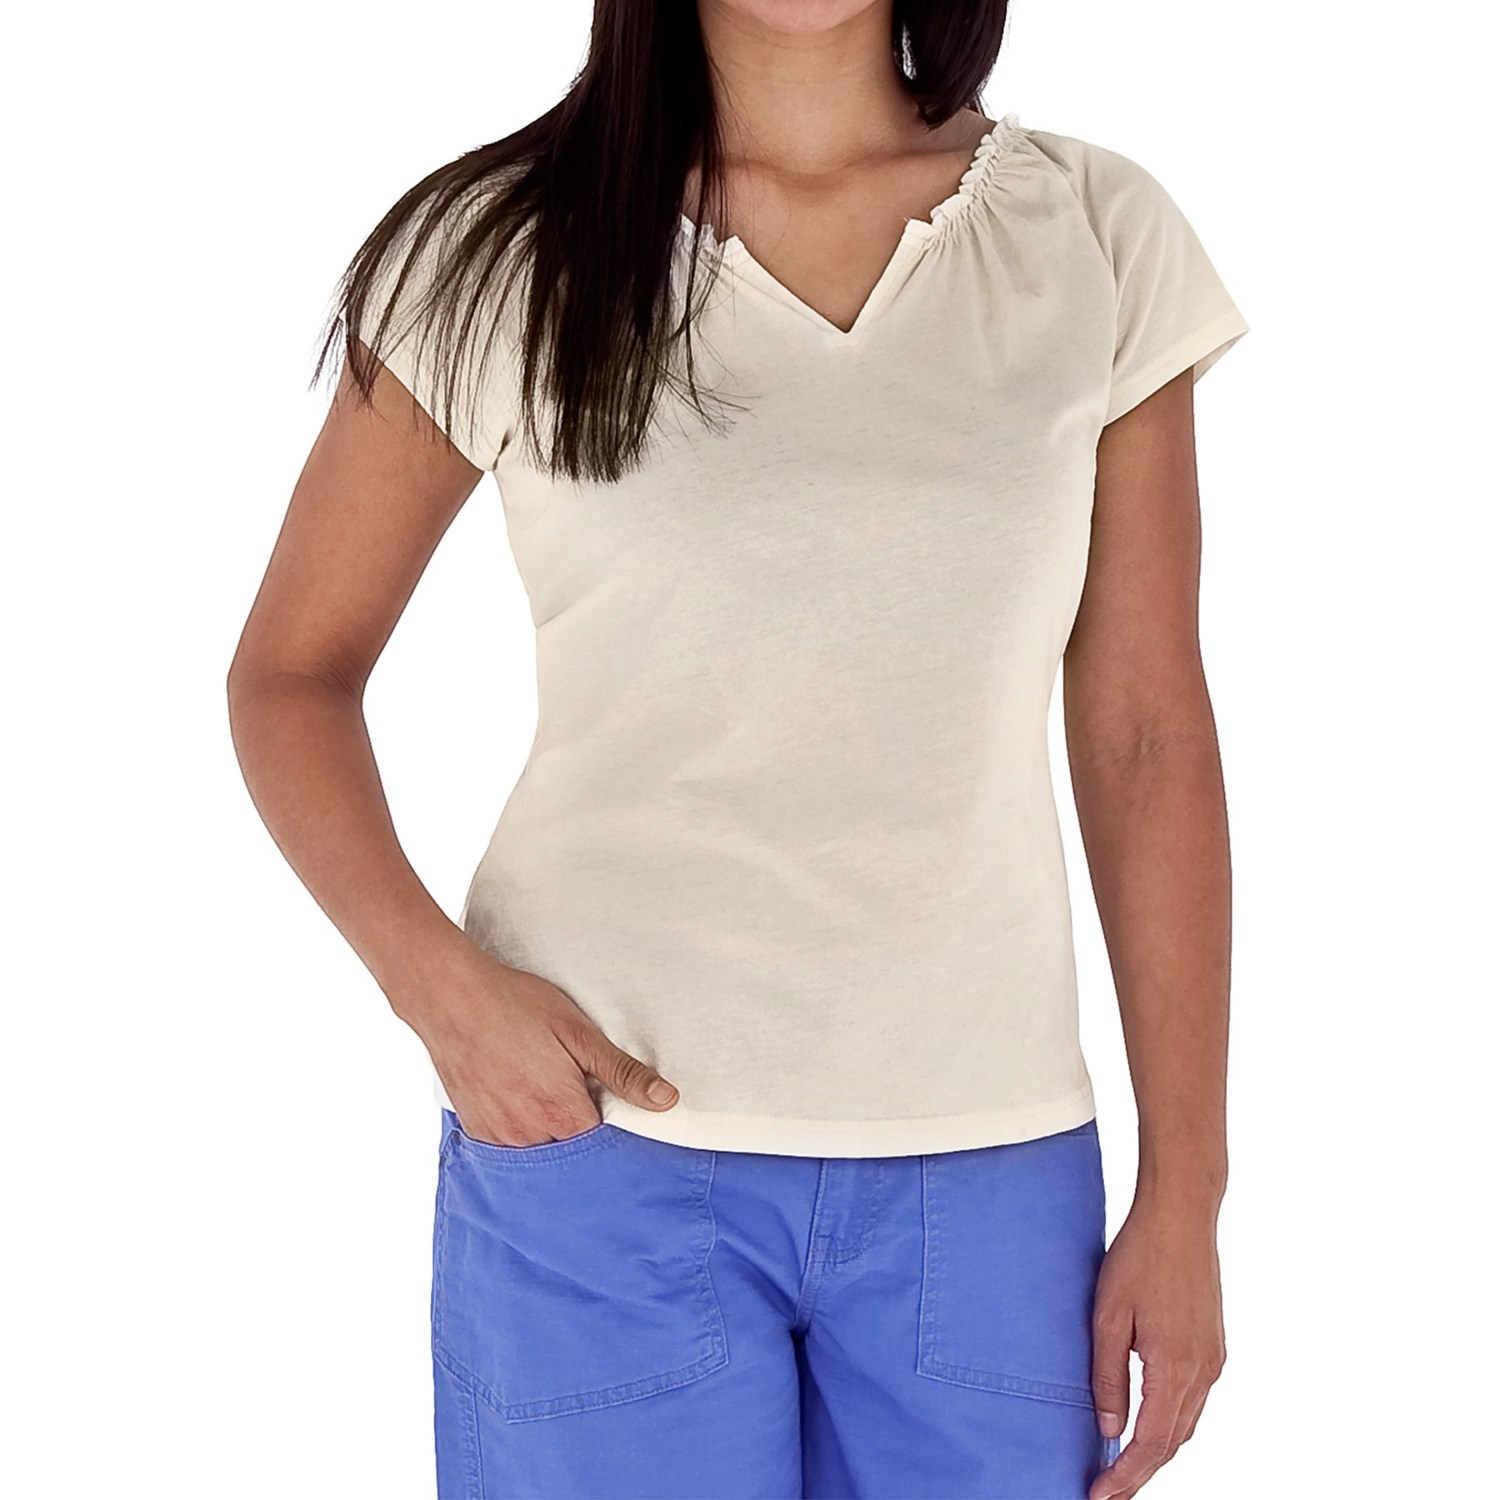 ... Tadmor Shirt - Organic Cotton, Short Sleeve (For Women) in Crème